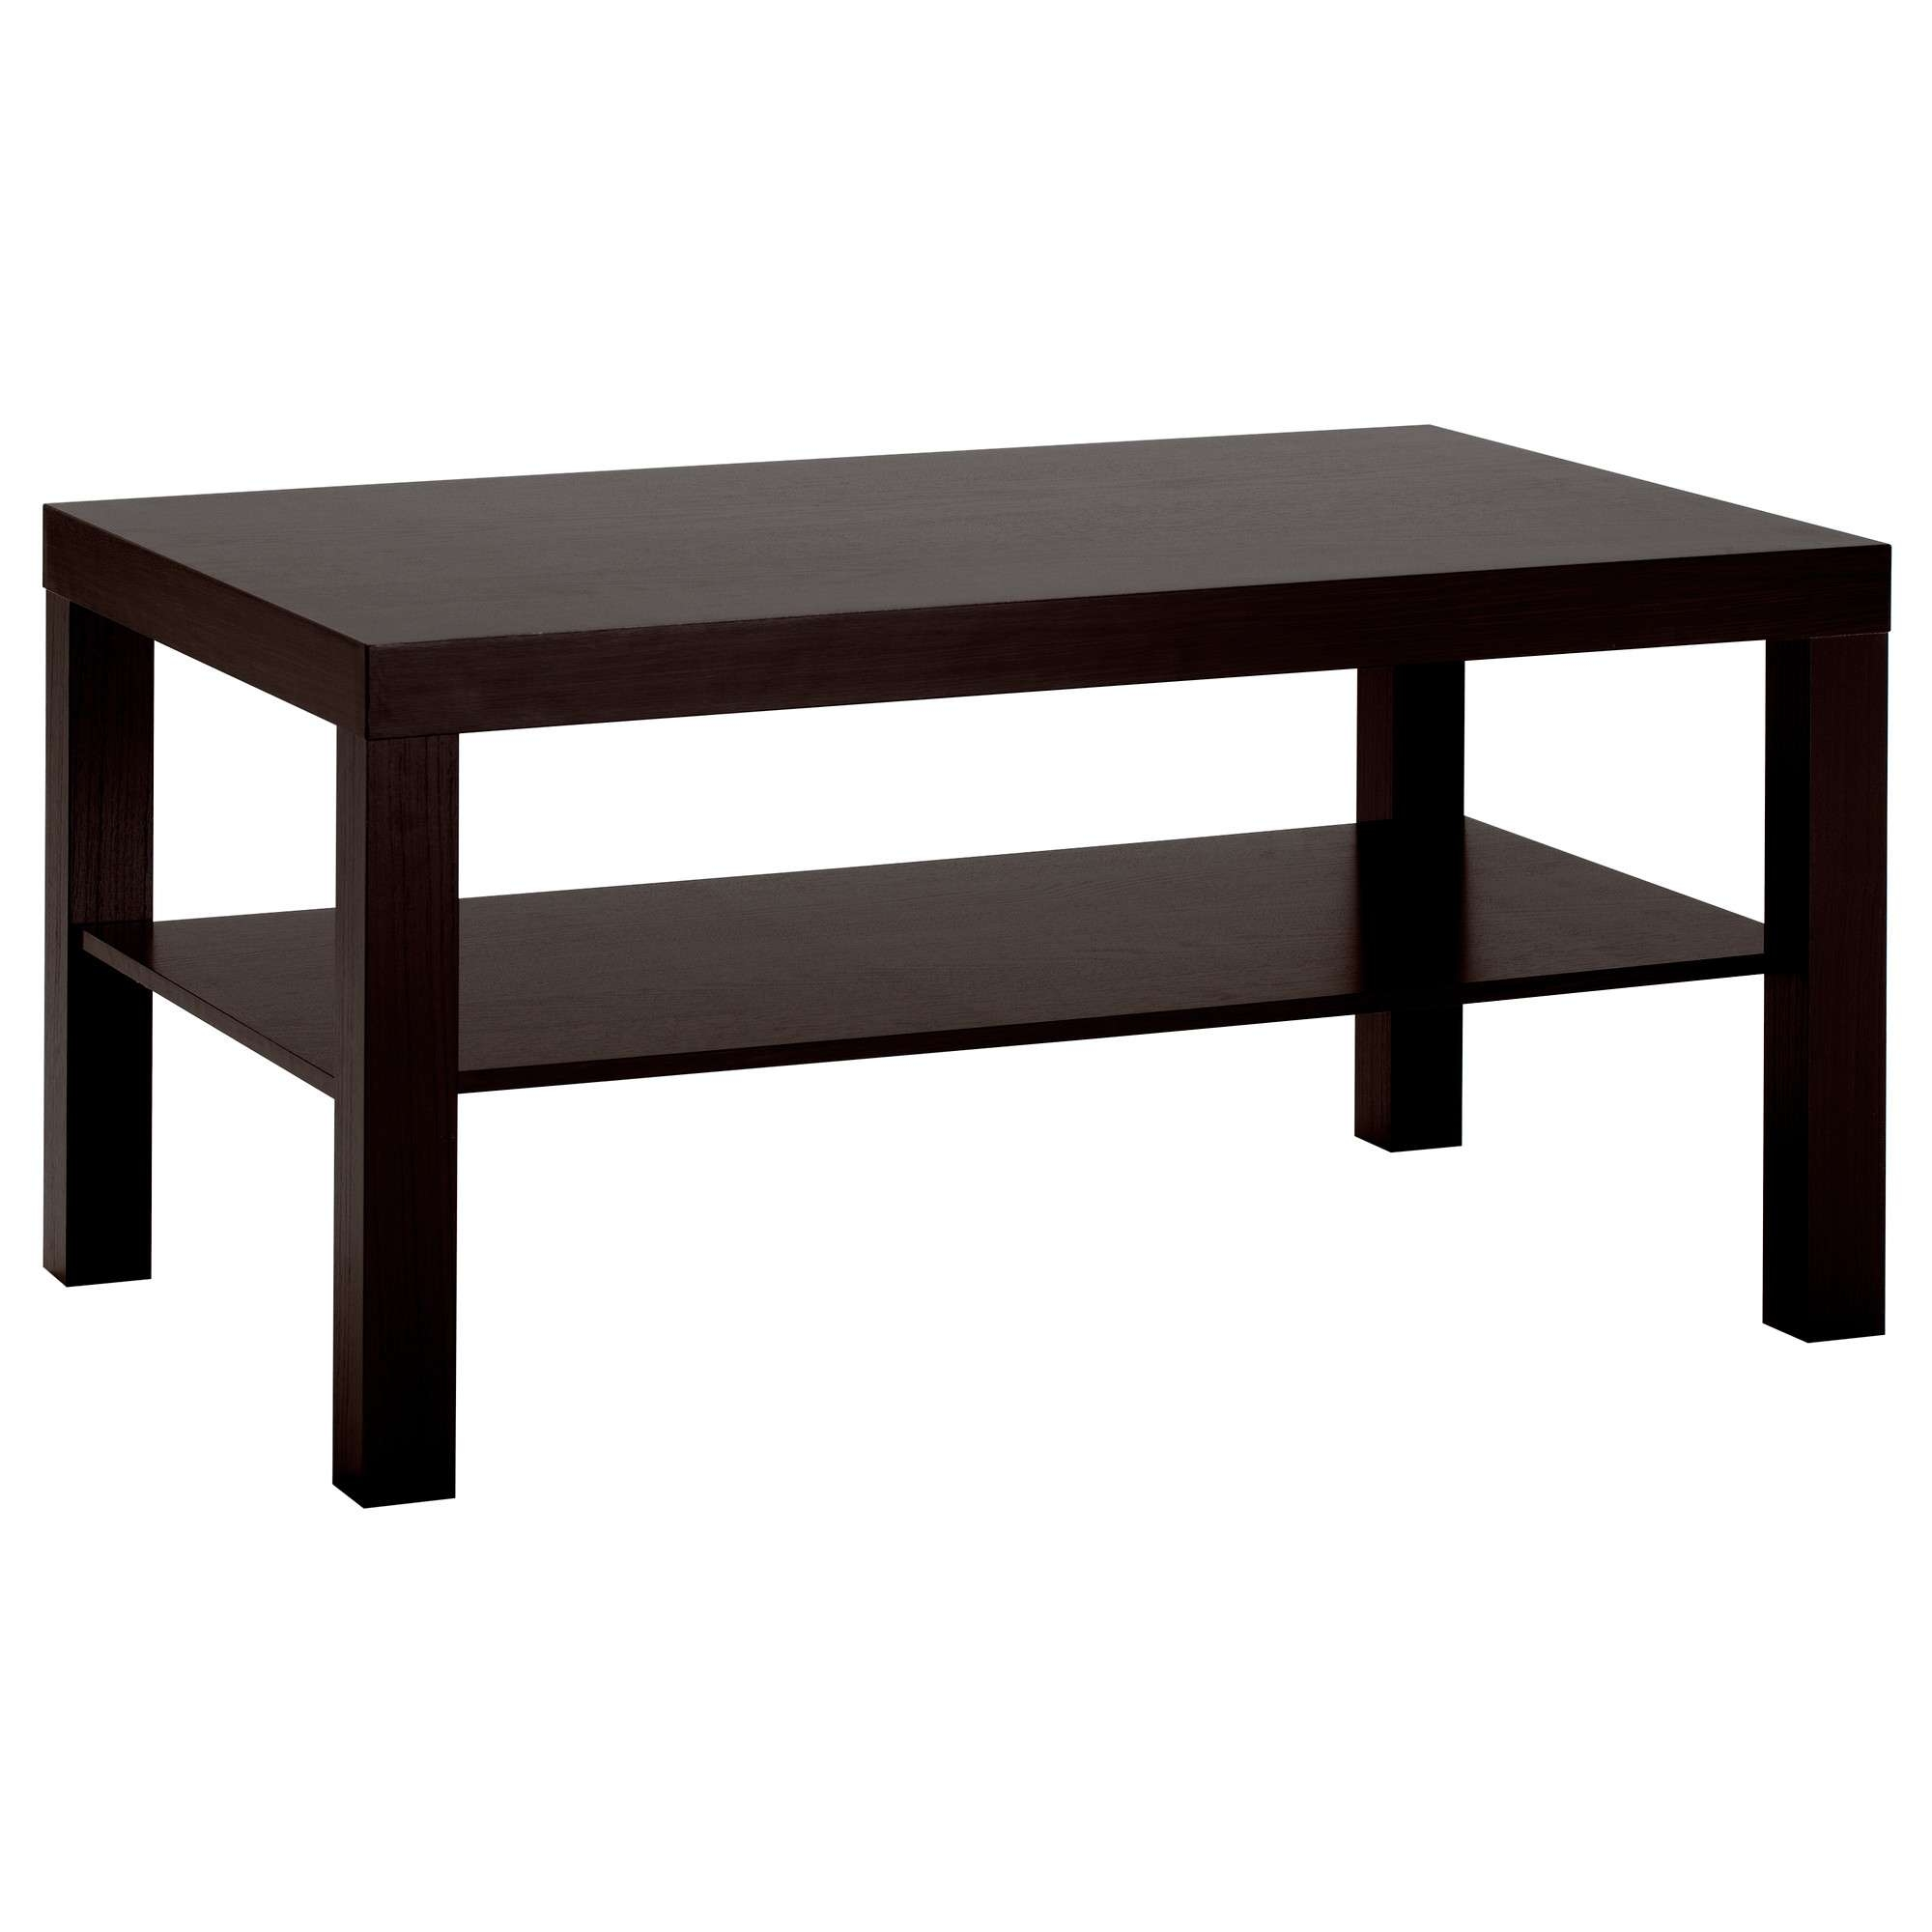 "Best And Newest Coffee Tables With Shelves In Lack Coffee Table – Black Brown, 35 3/8x21 5/8 "" – Ikea (View 7 of 20)"